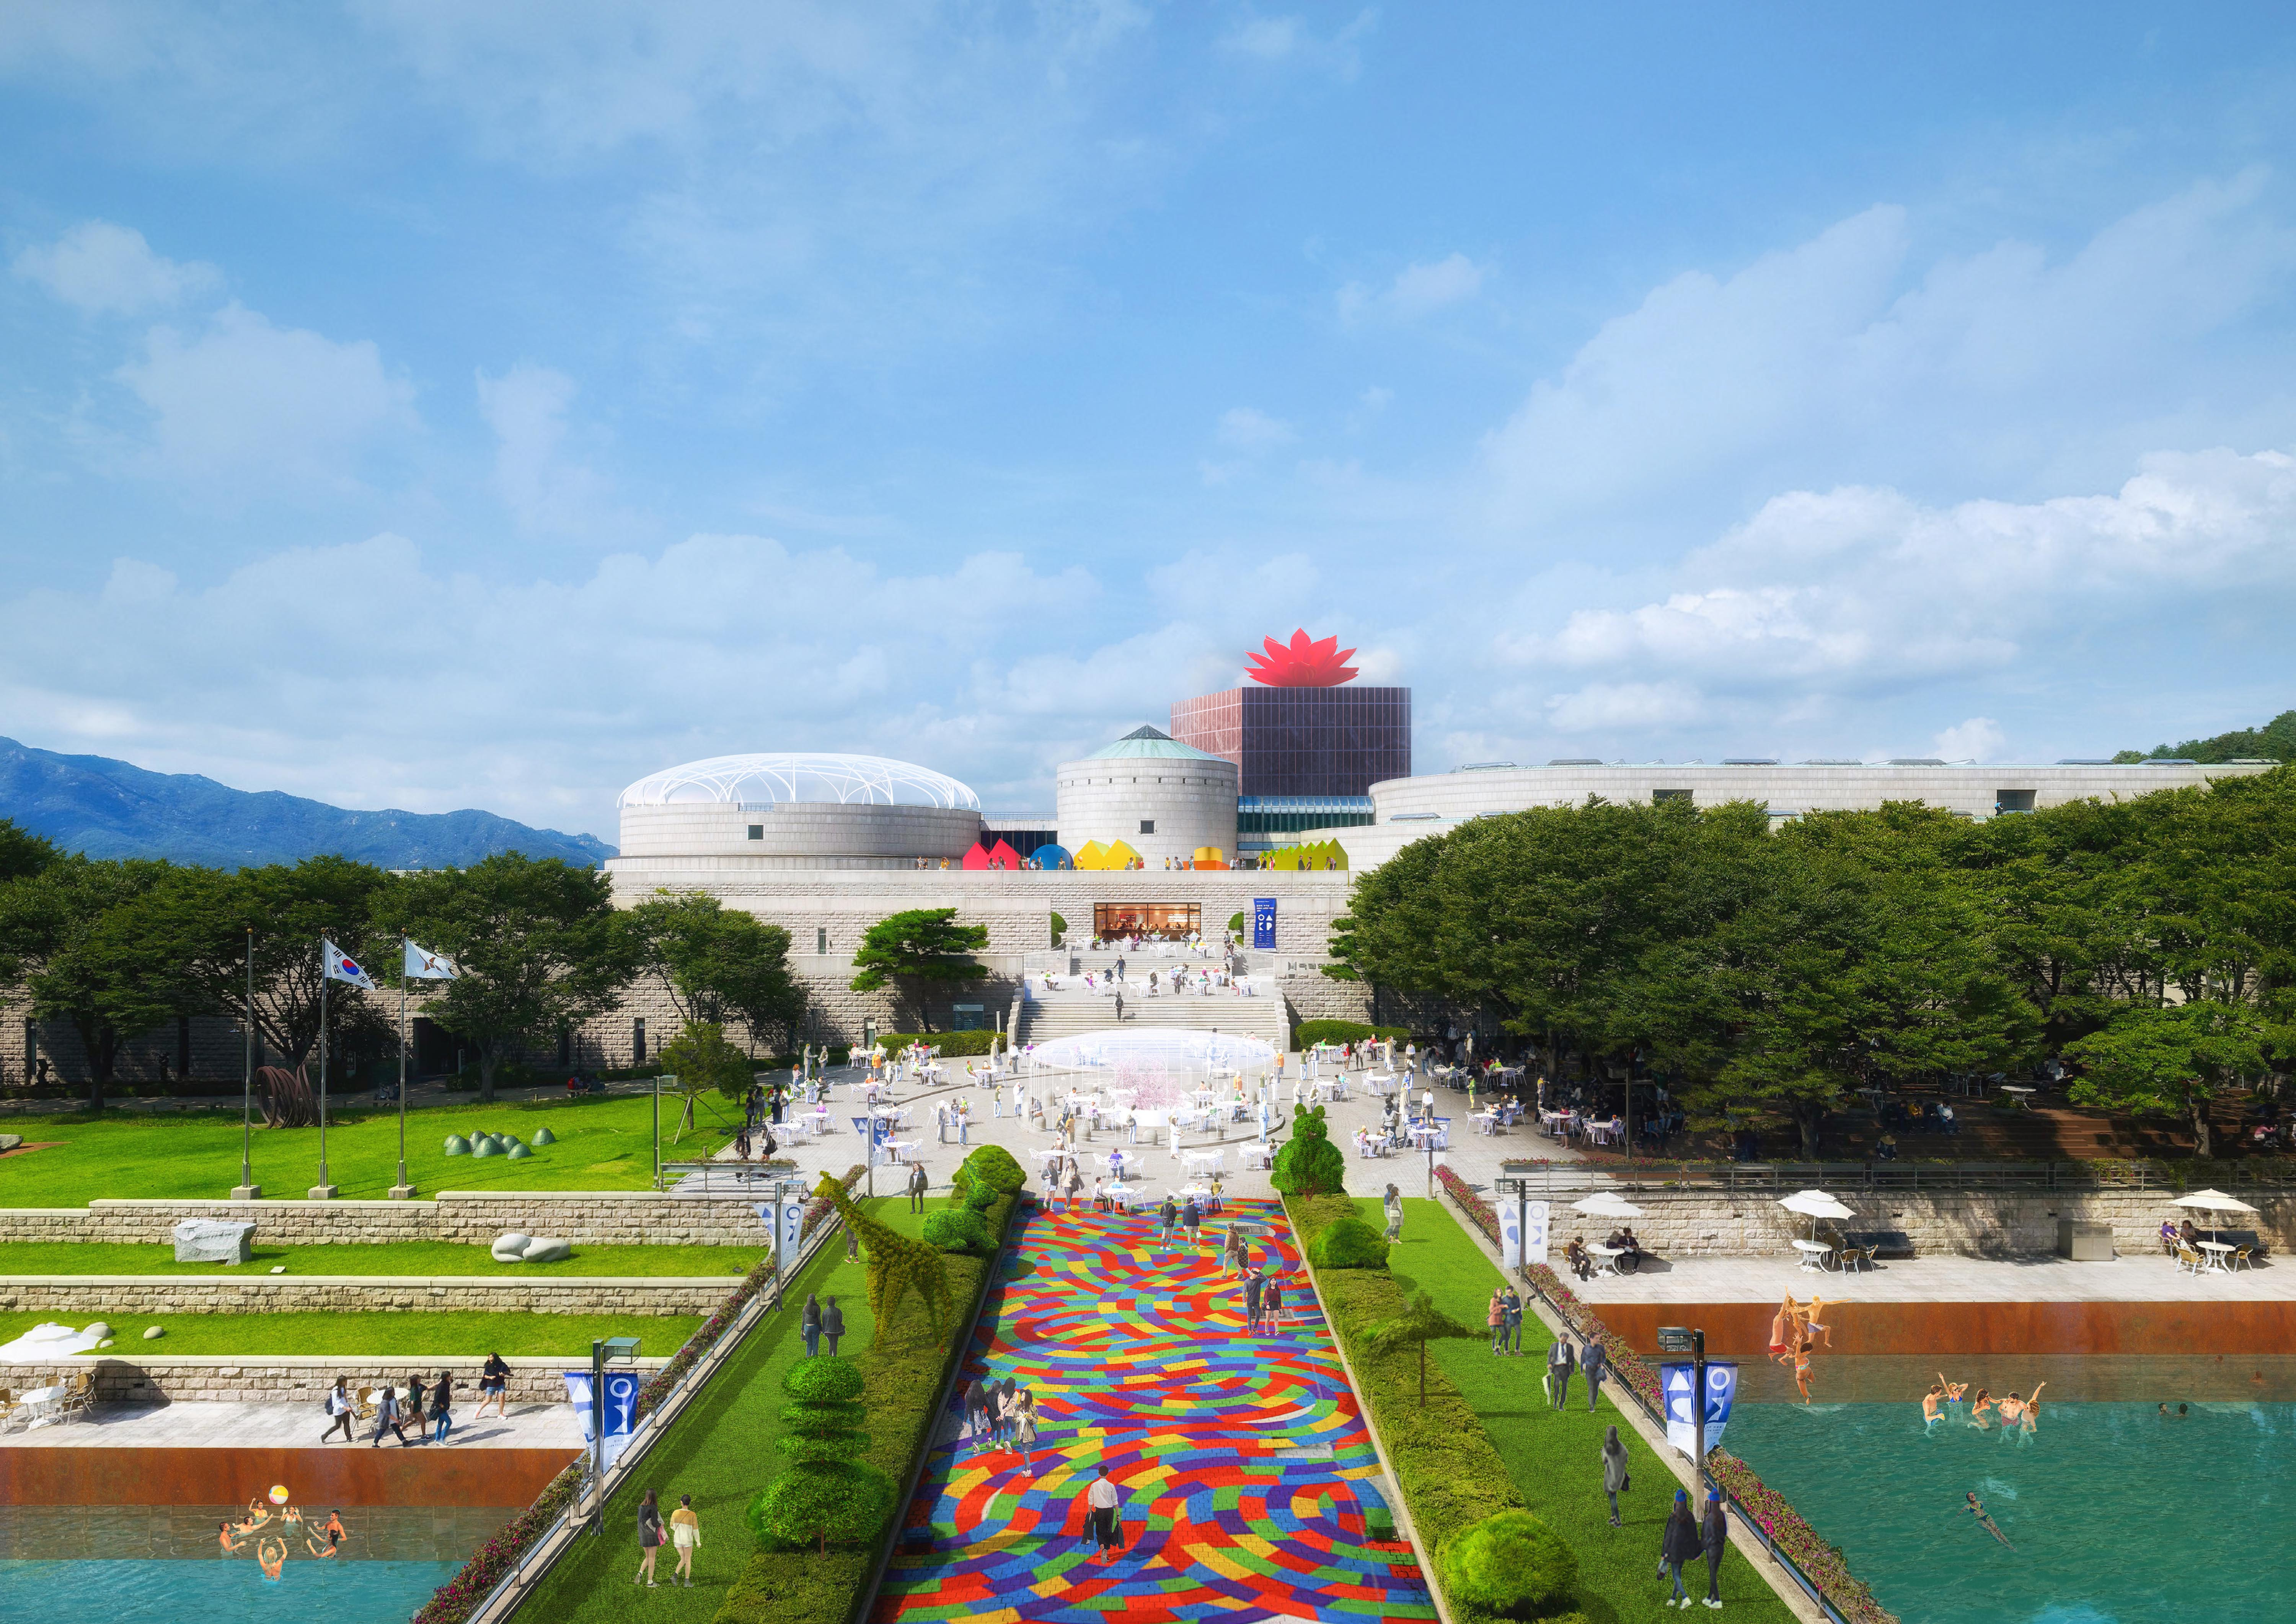 Rethinking Space: Voyage of Imagination at MMCA, Gwacheon, Korea